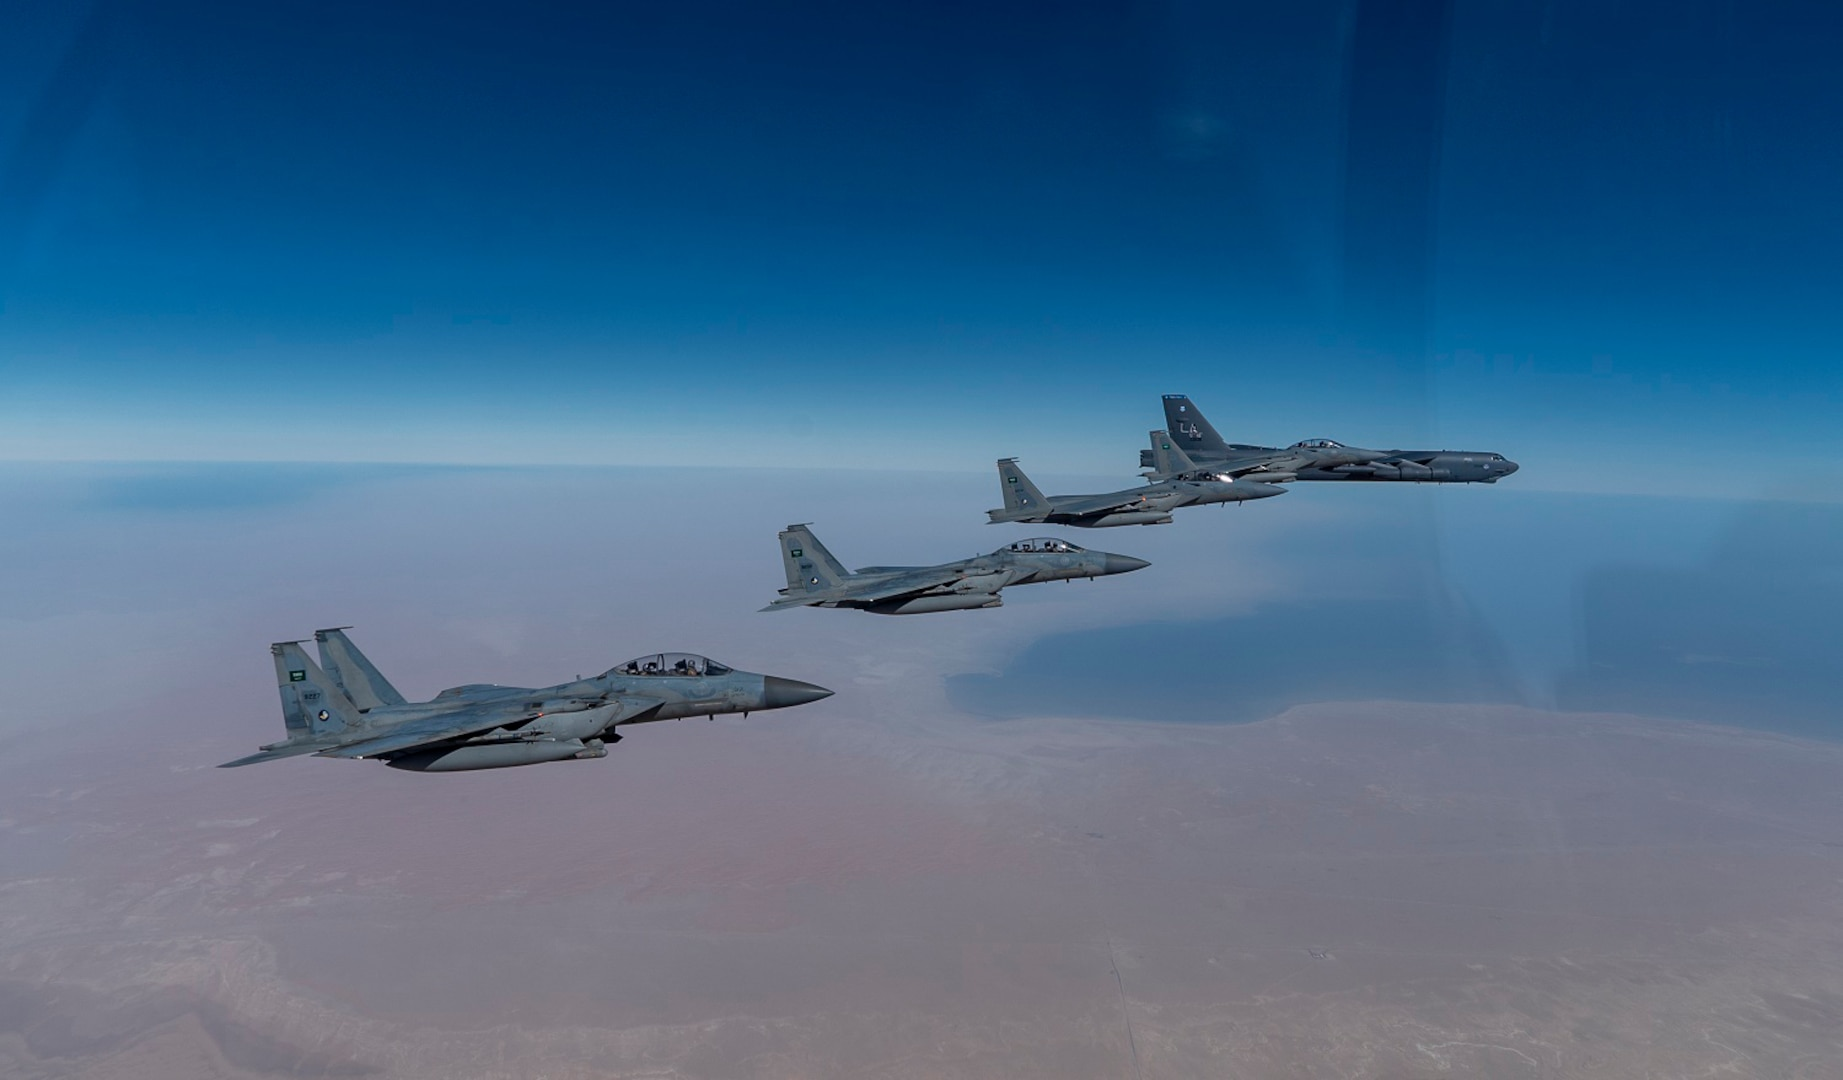 A U.S. Air Force B-52 Stratofortress  from the 2nd Bomb Wing, Barksdale Air Force Base, LA, flew with Royal Saudi Arabian Air Force F-15SAs during a bomber task force mission over the U.S. Central Command area of responsibility, Jan. 27, 2021. The bomber deployment underscores the U.S. Military's commitment to regional security and demonstrates a unique ability to rapidly deploy on short notice. The B-52 is a long-range, heavy bomber that is capable of flying at high subsonic speeds of altitudes of up to 50,000 feet and provides the United States with a global strike capability.